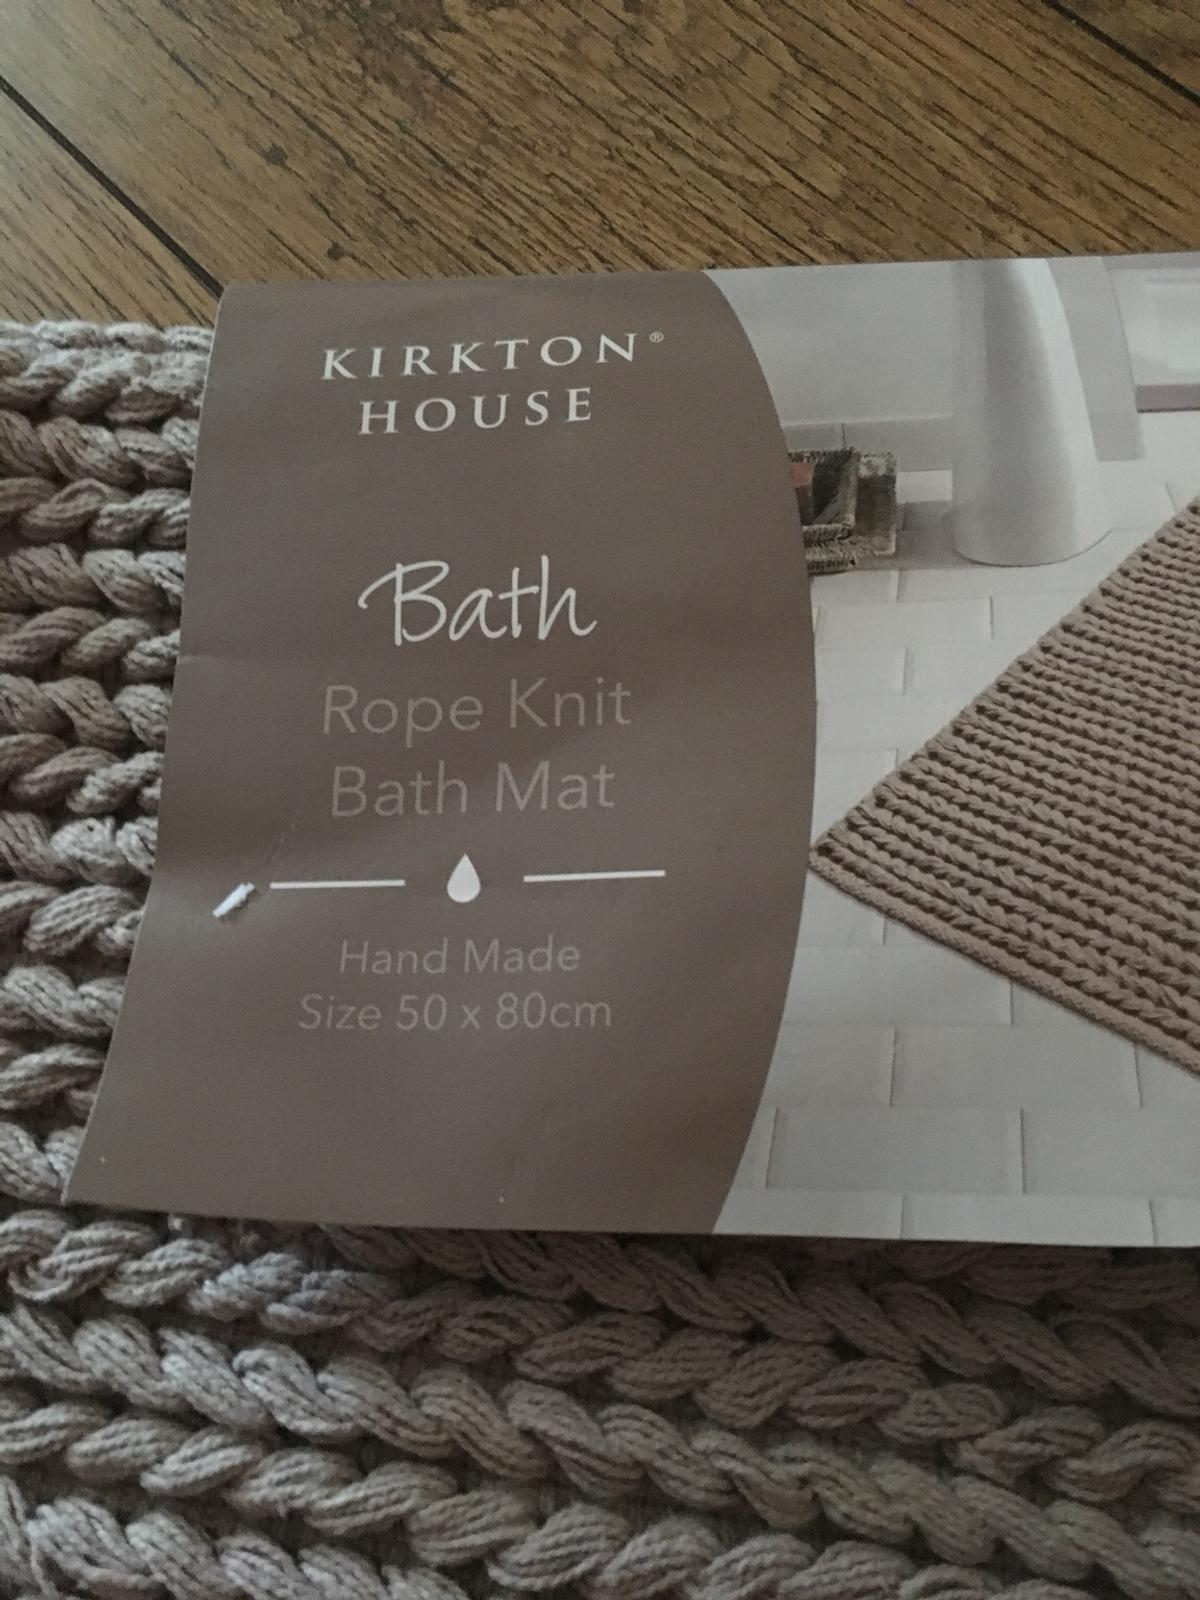 Kirkton House Rope Knit Bath Mat In Ws10 Sandwell For 6 00 For Sale Shpock